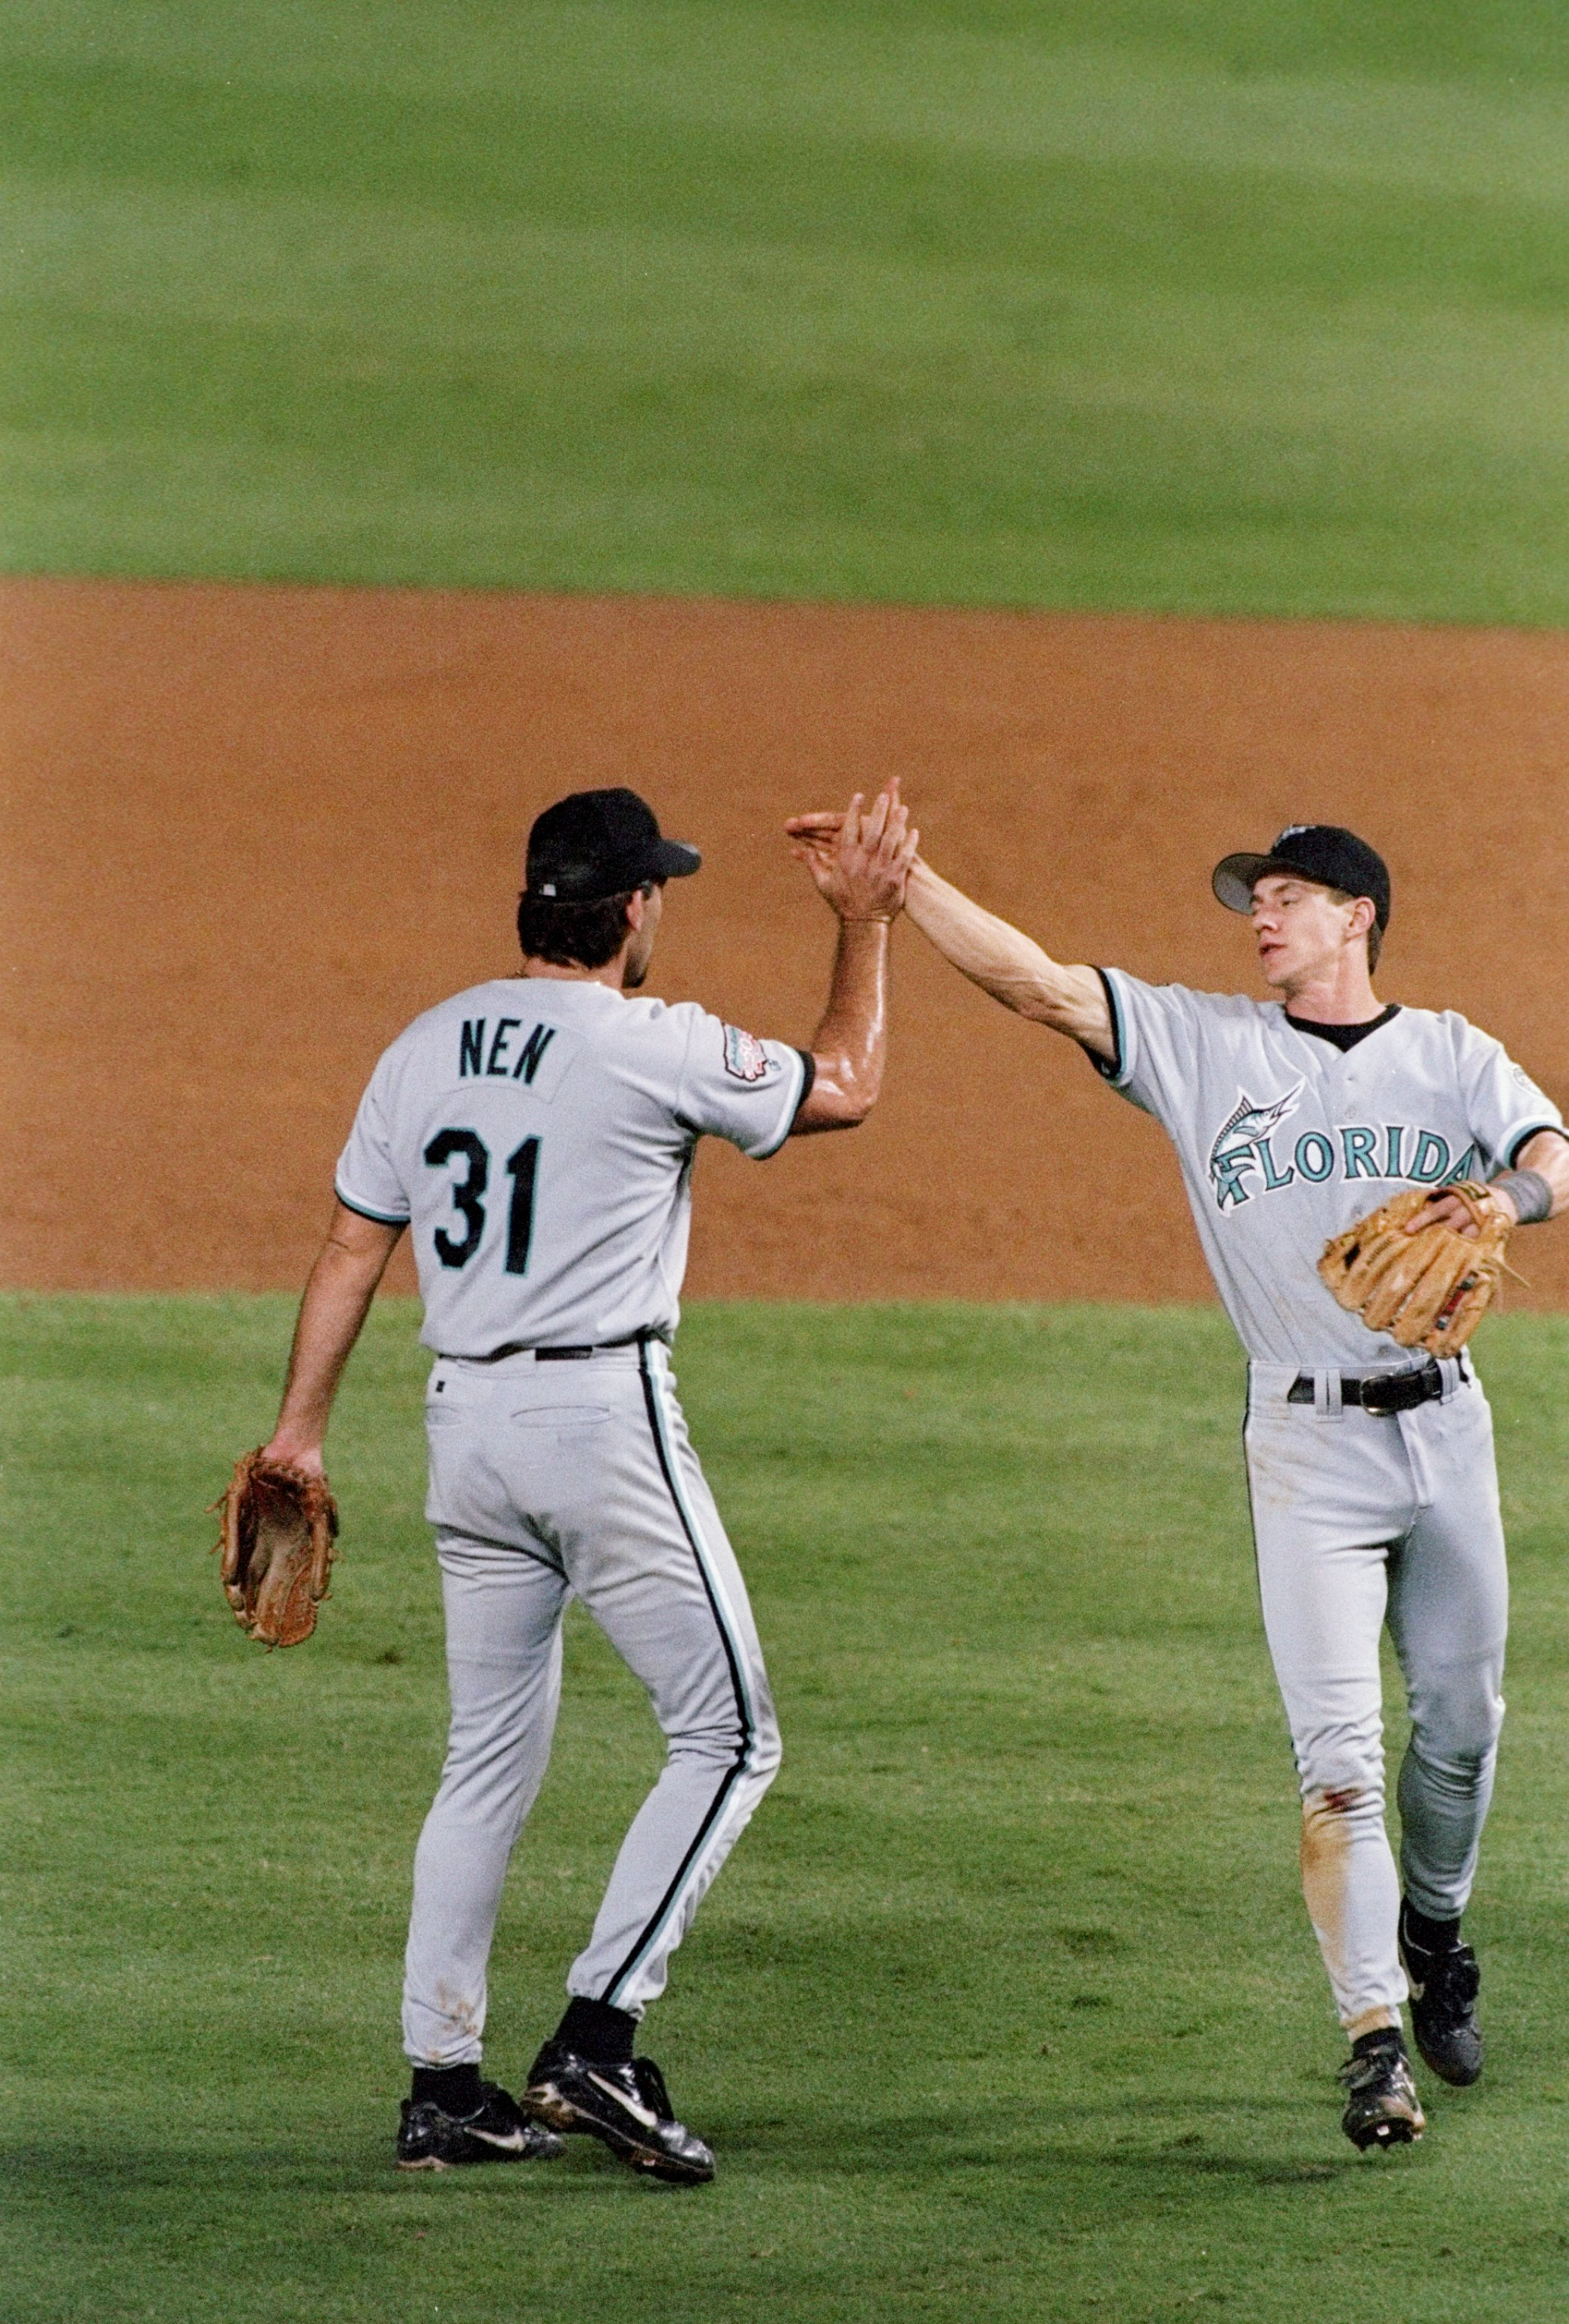 7 Oct 1997: Pitcher Rob Nen (left) and infielder Craig Counsell of the Florida Marlins celebrate during a game against the Atlanta Braves at Turner Field in Atlanta, Georgia. The Marlins won the game, 5-3.